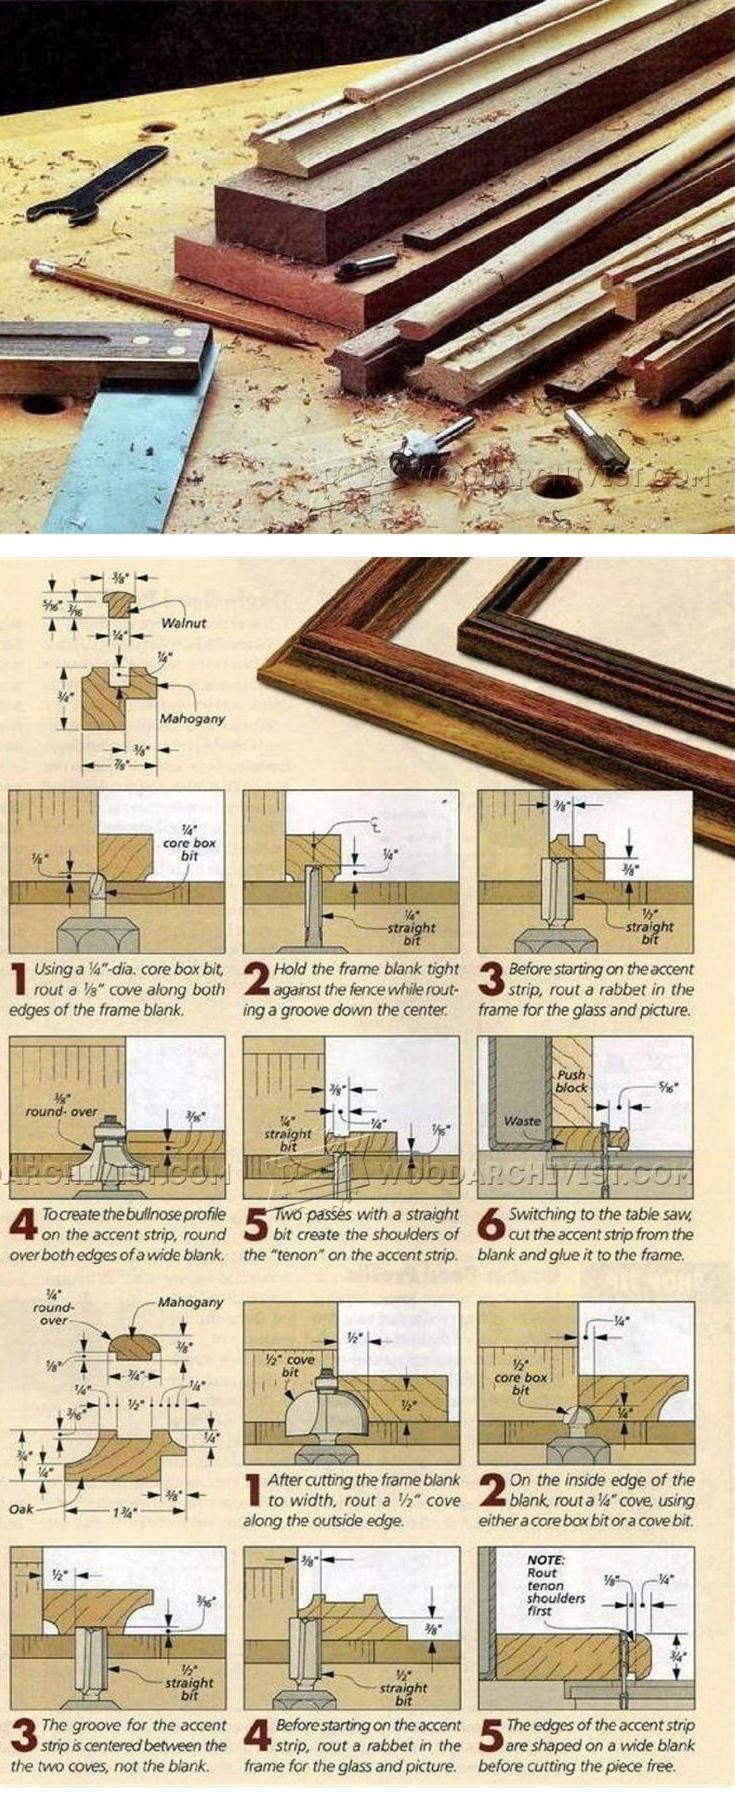 Making Picture Frame Moldings - Woodworking Plans and Projects | WoodArchivist.com